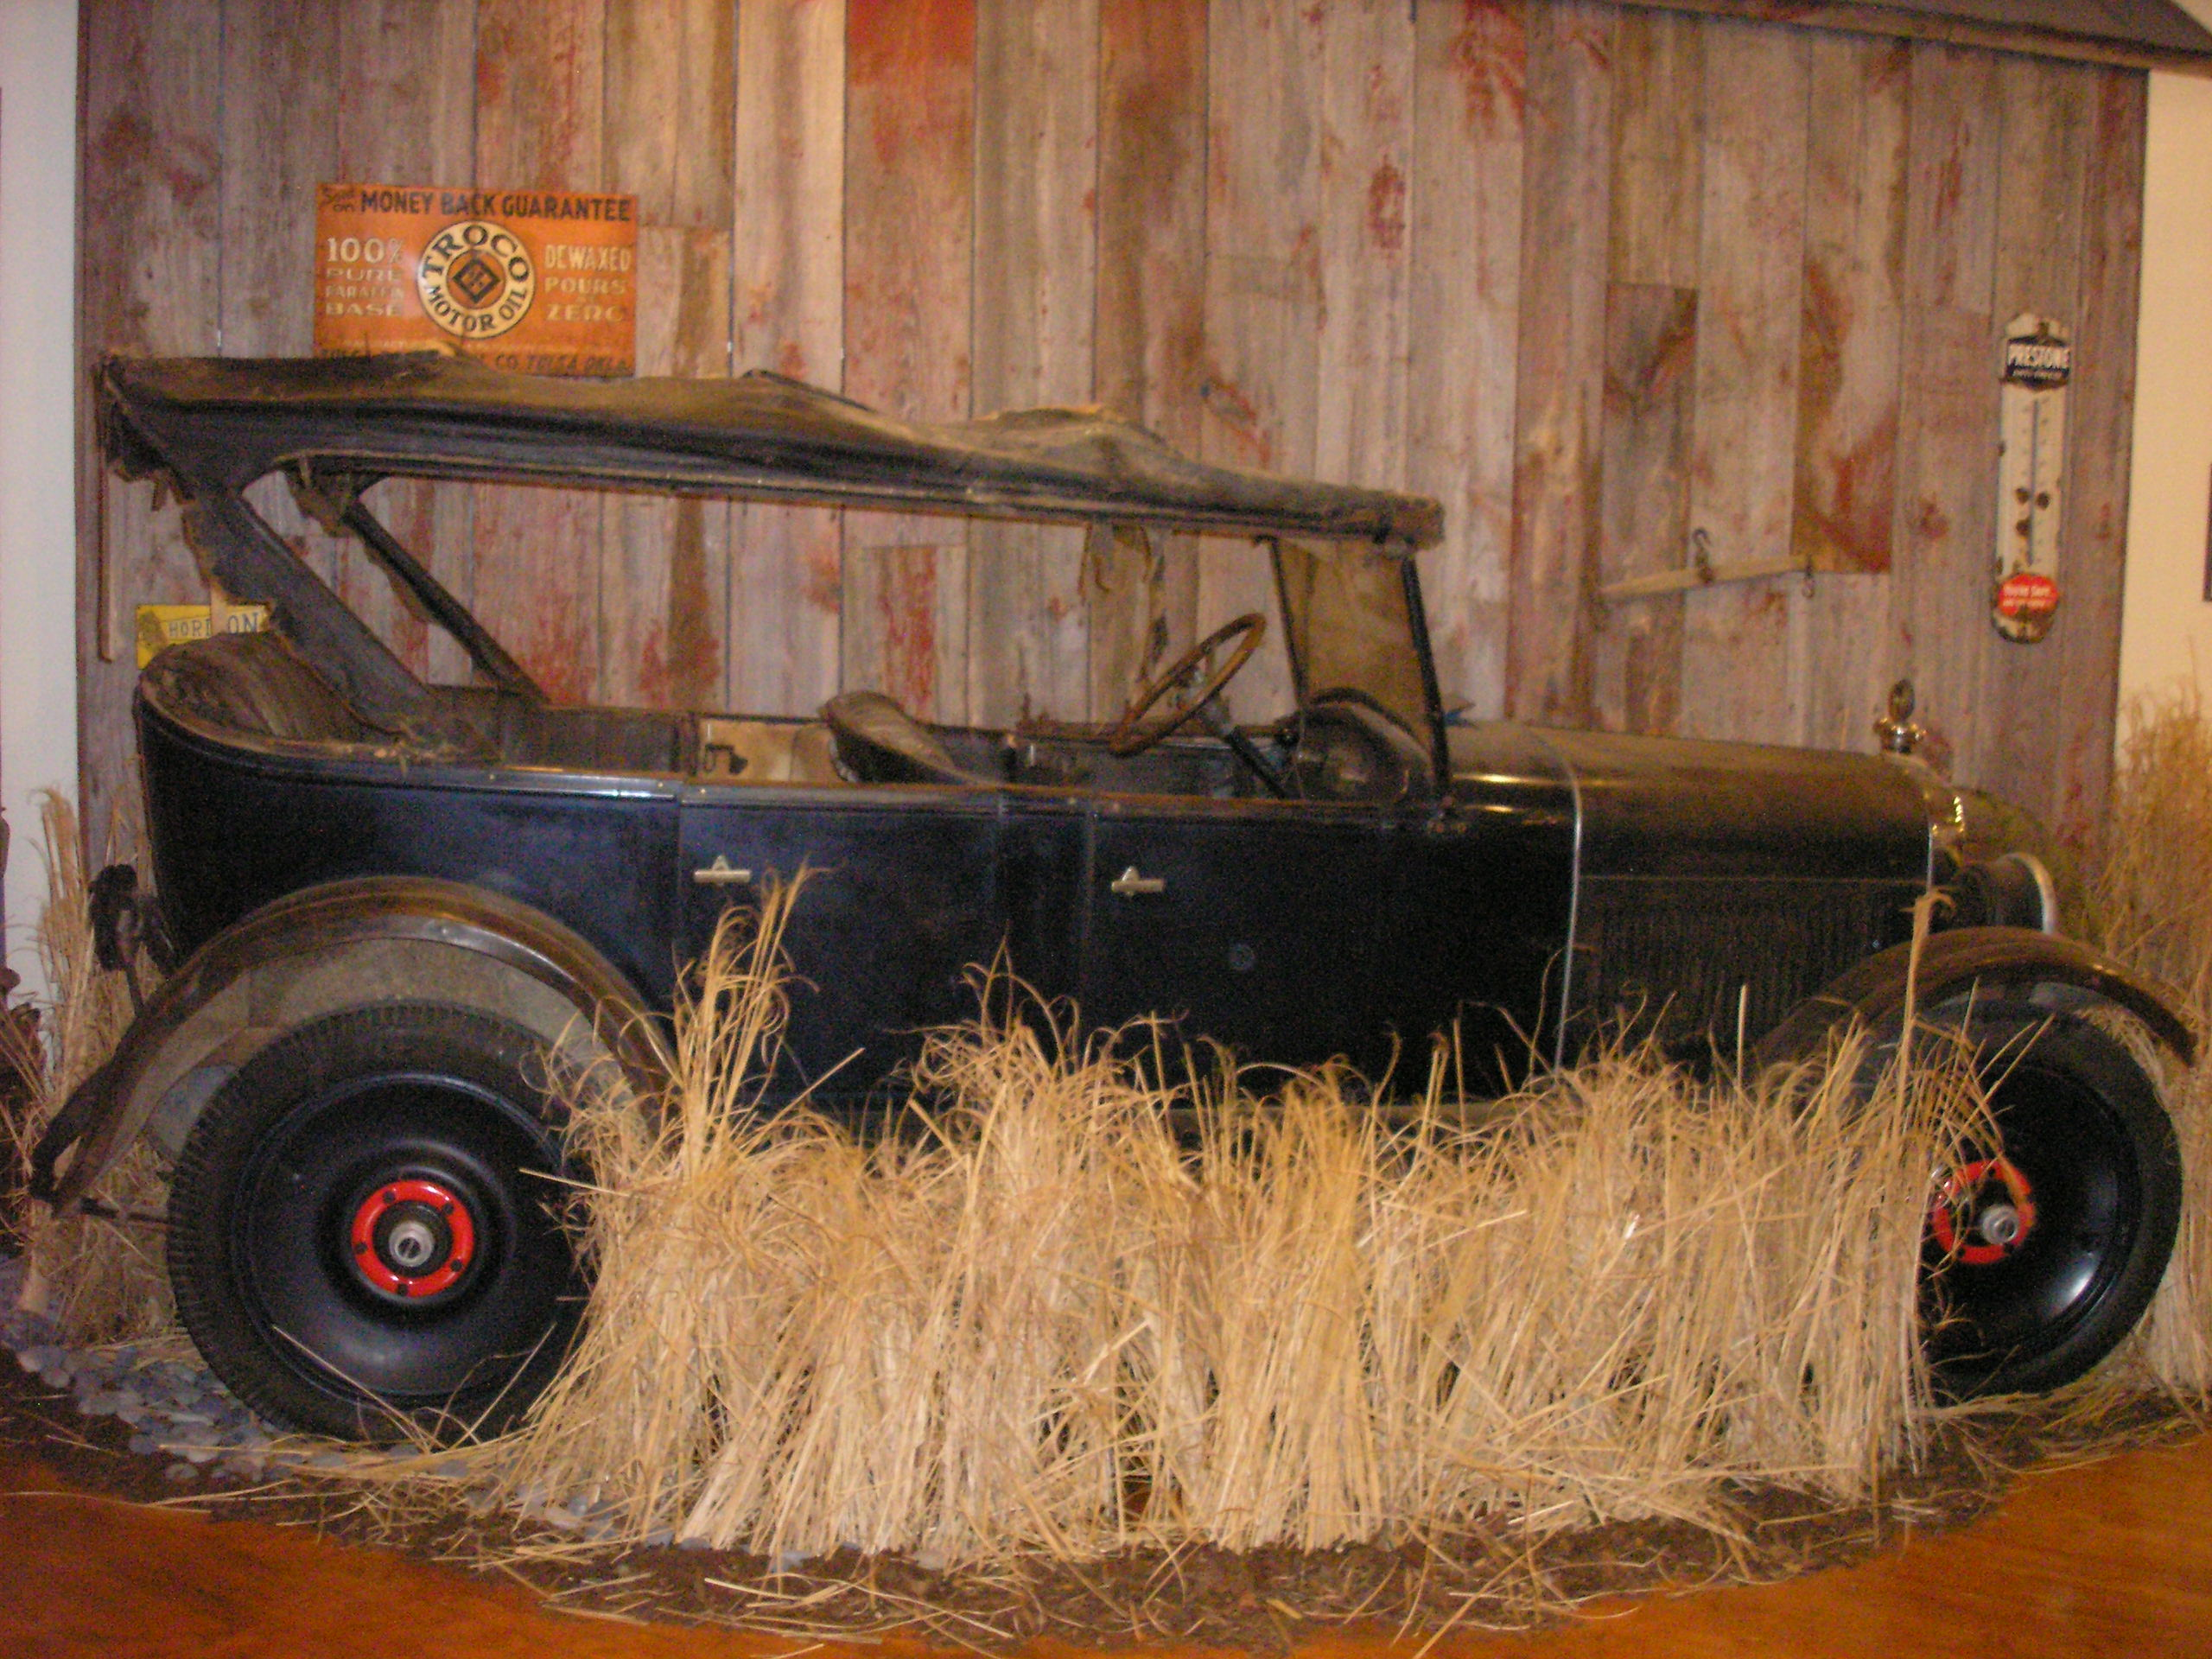 Click image for larger version  Name:Barn Find Oakland.JPG Views:65 Size:856.9 KB ID:50313